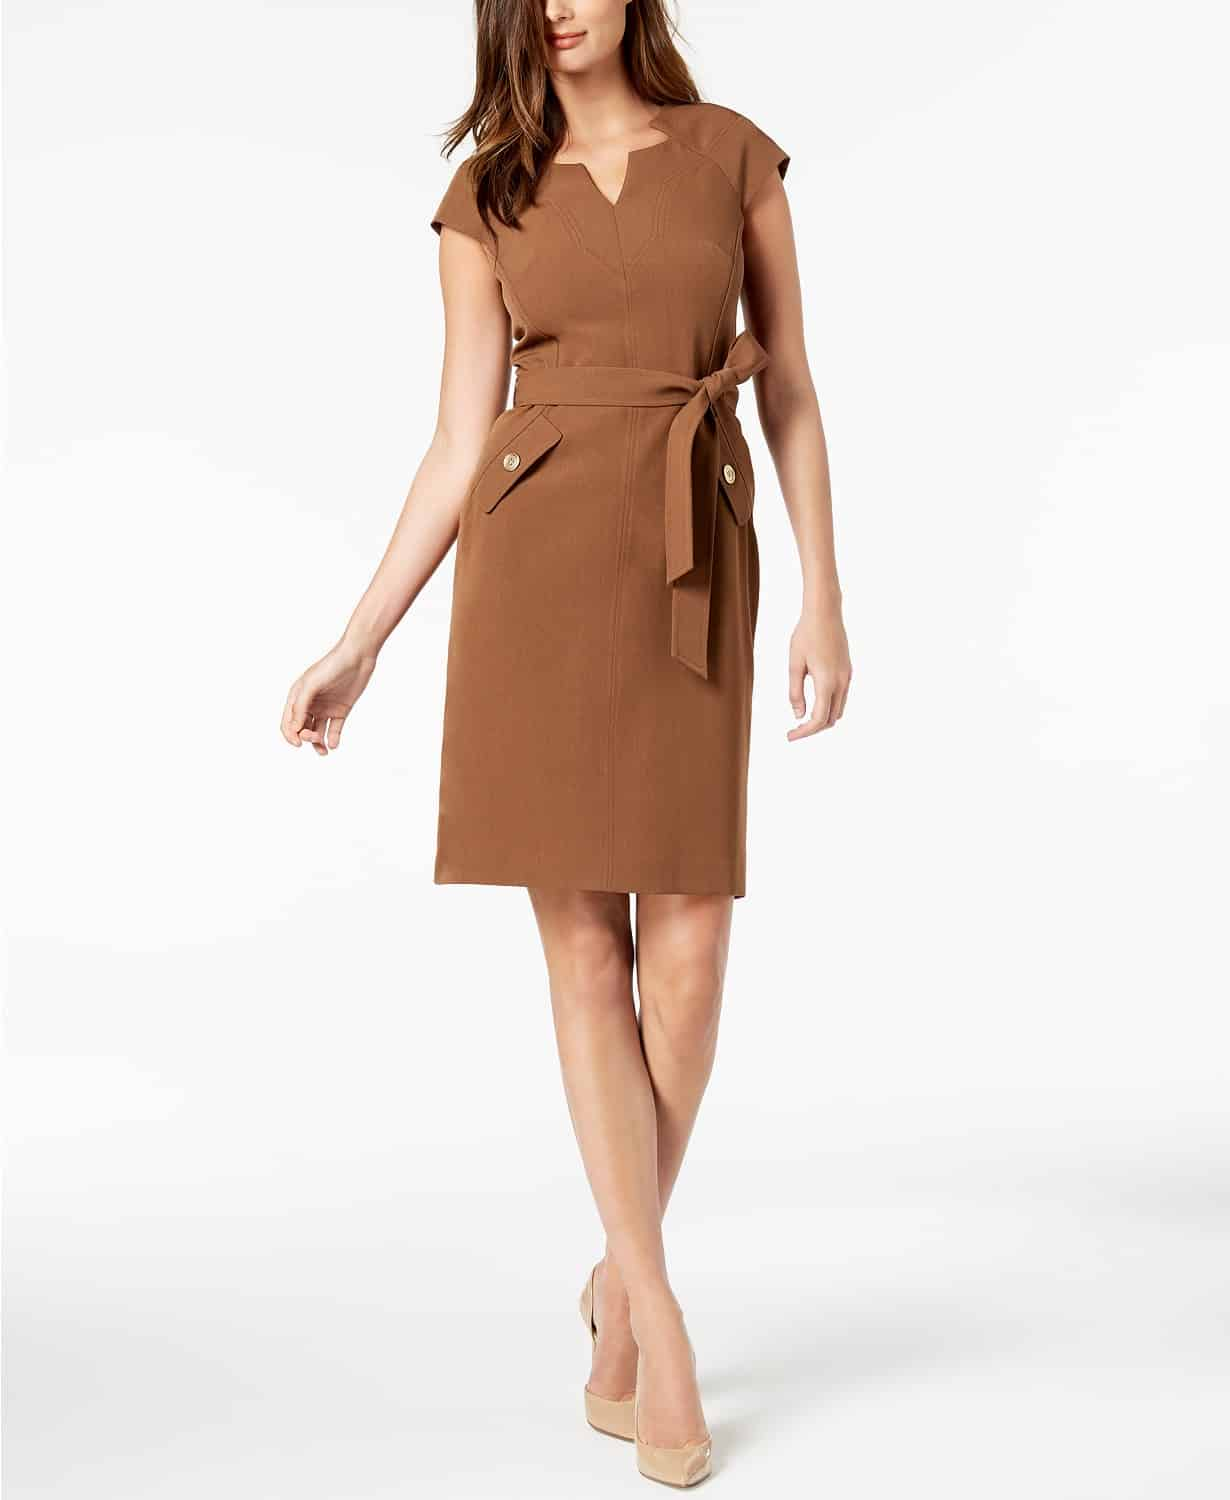 Belted brown sheath dress